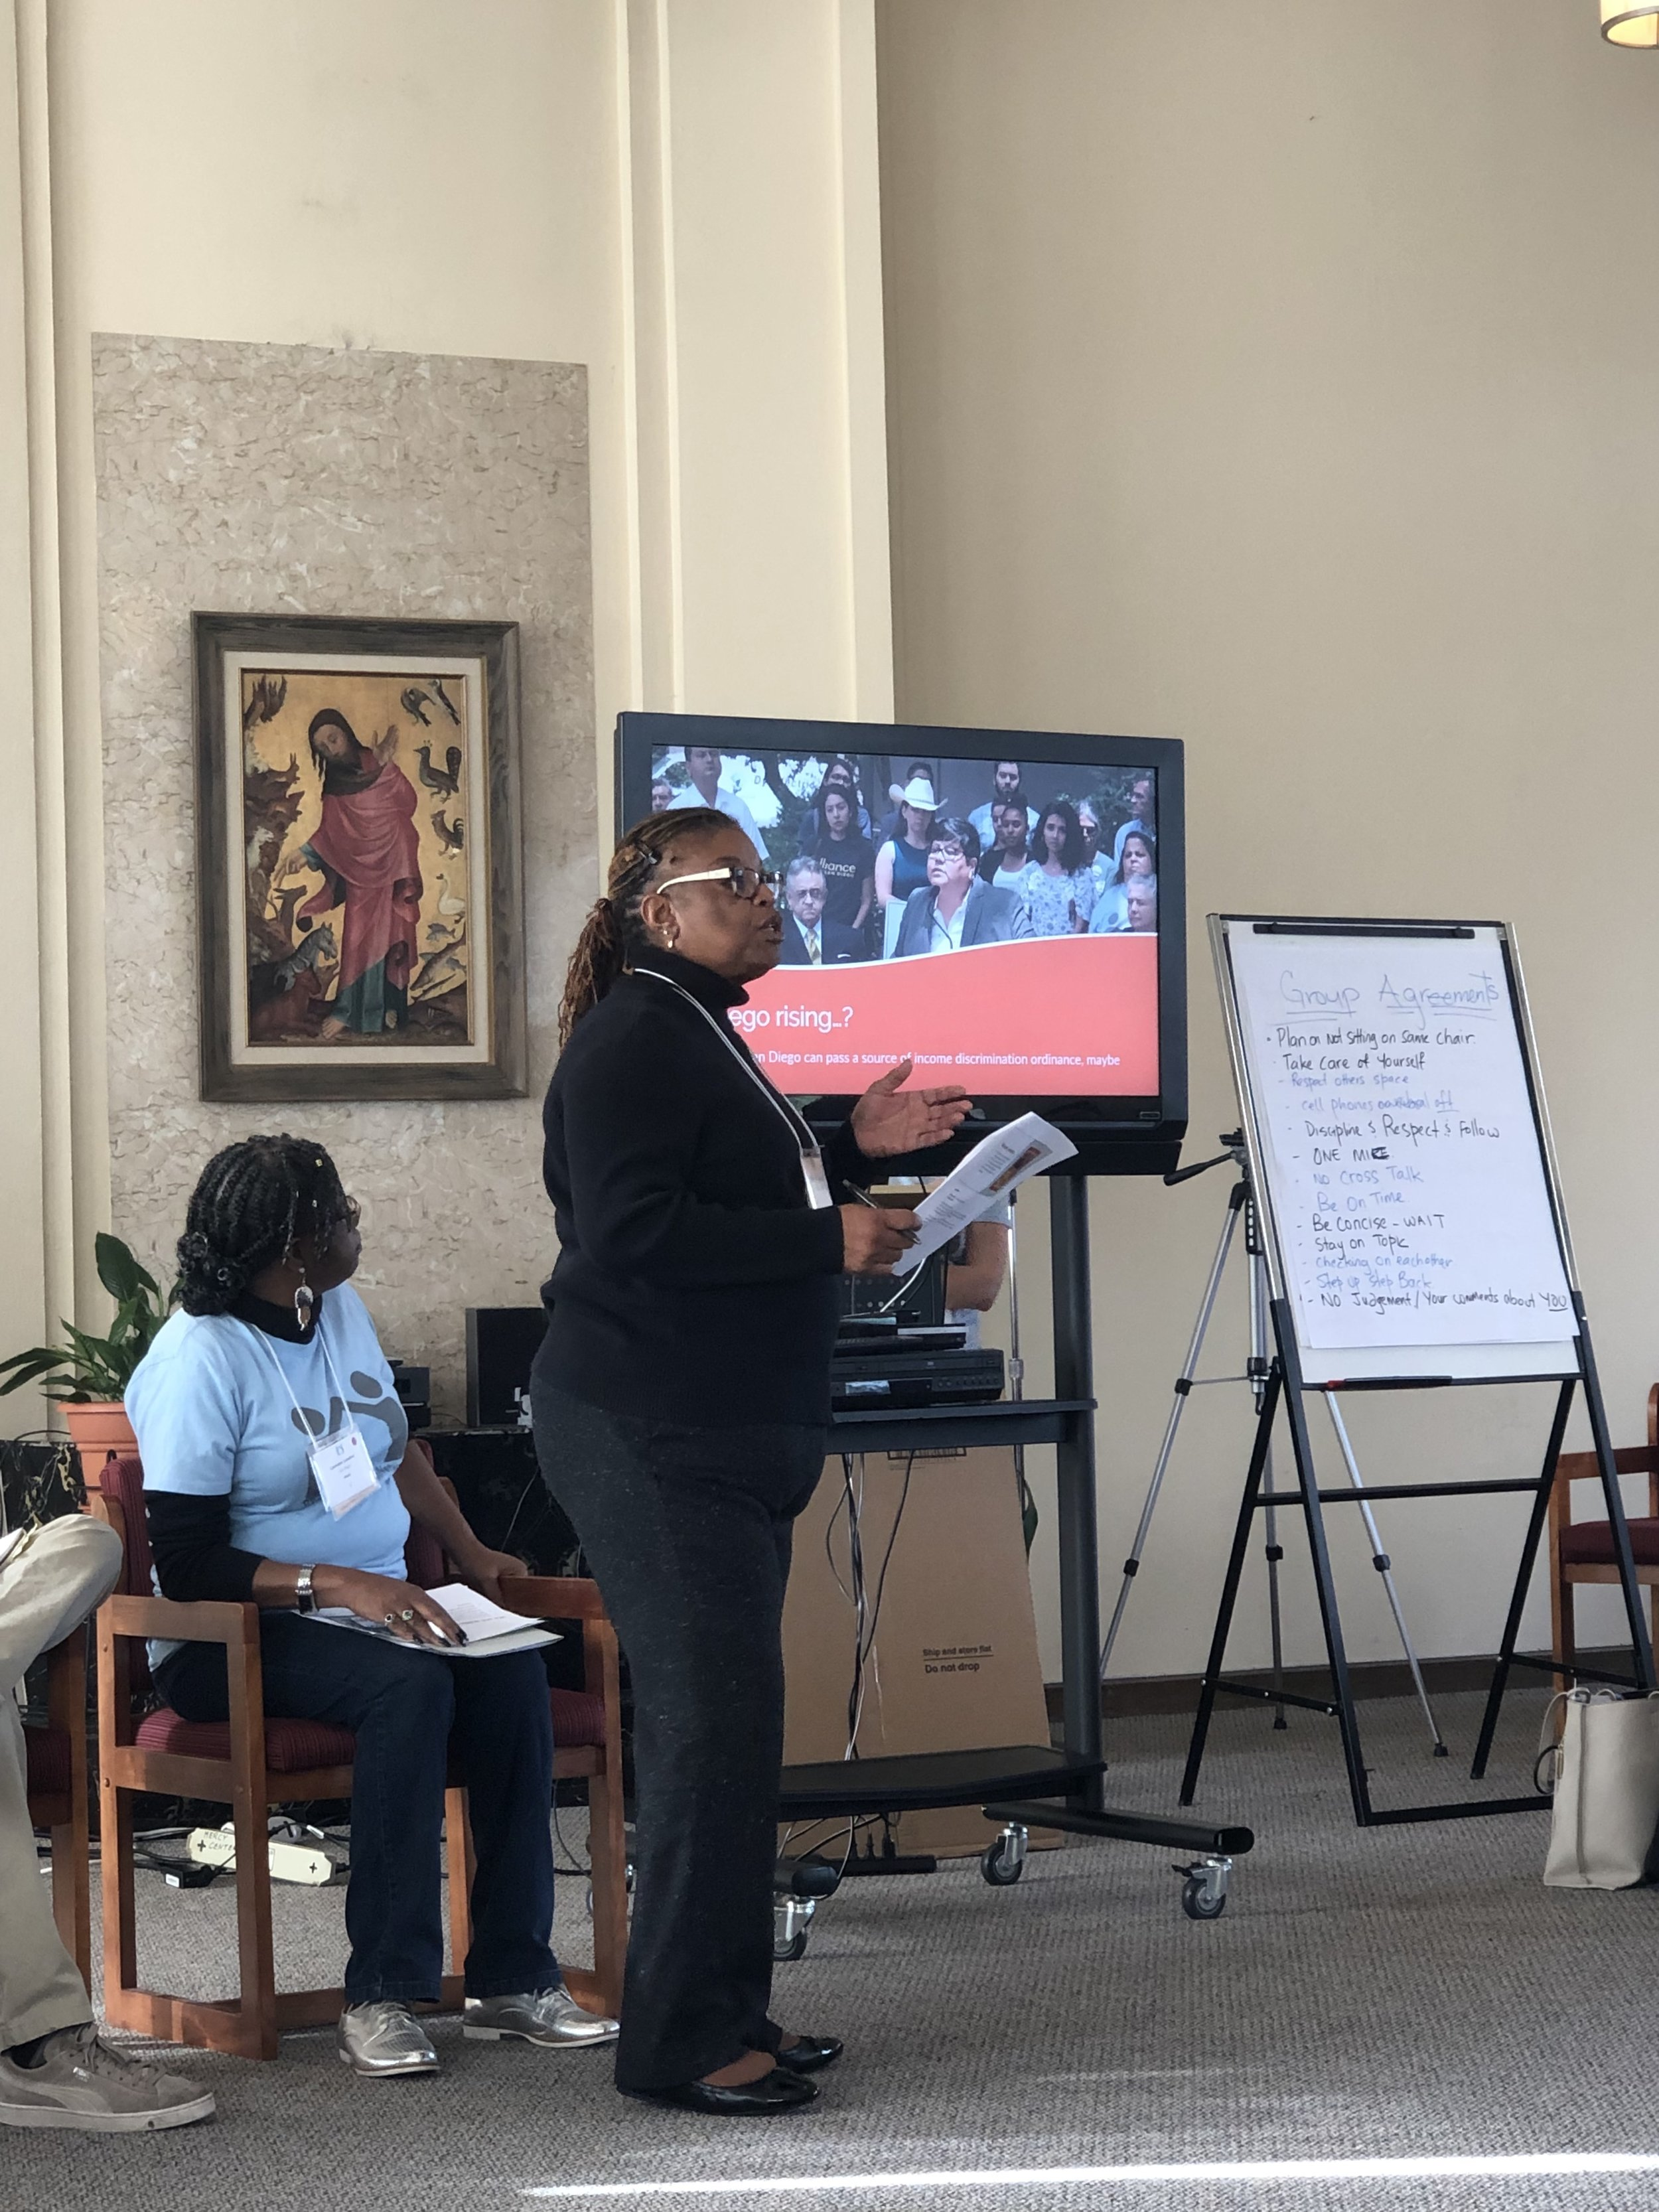 Rickie Brown presenting on Anti-Source of Income Discrimination Ordinance at Summit, Nov 2018